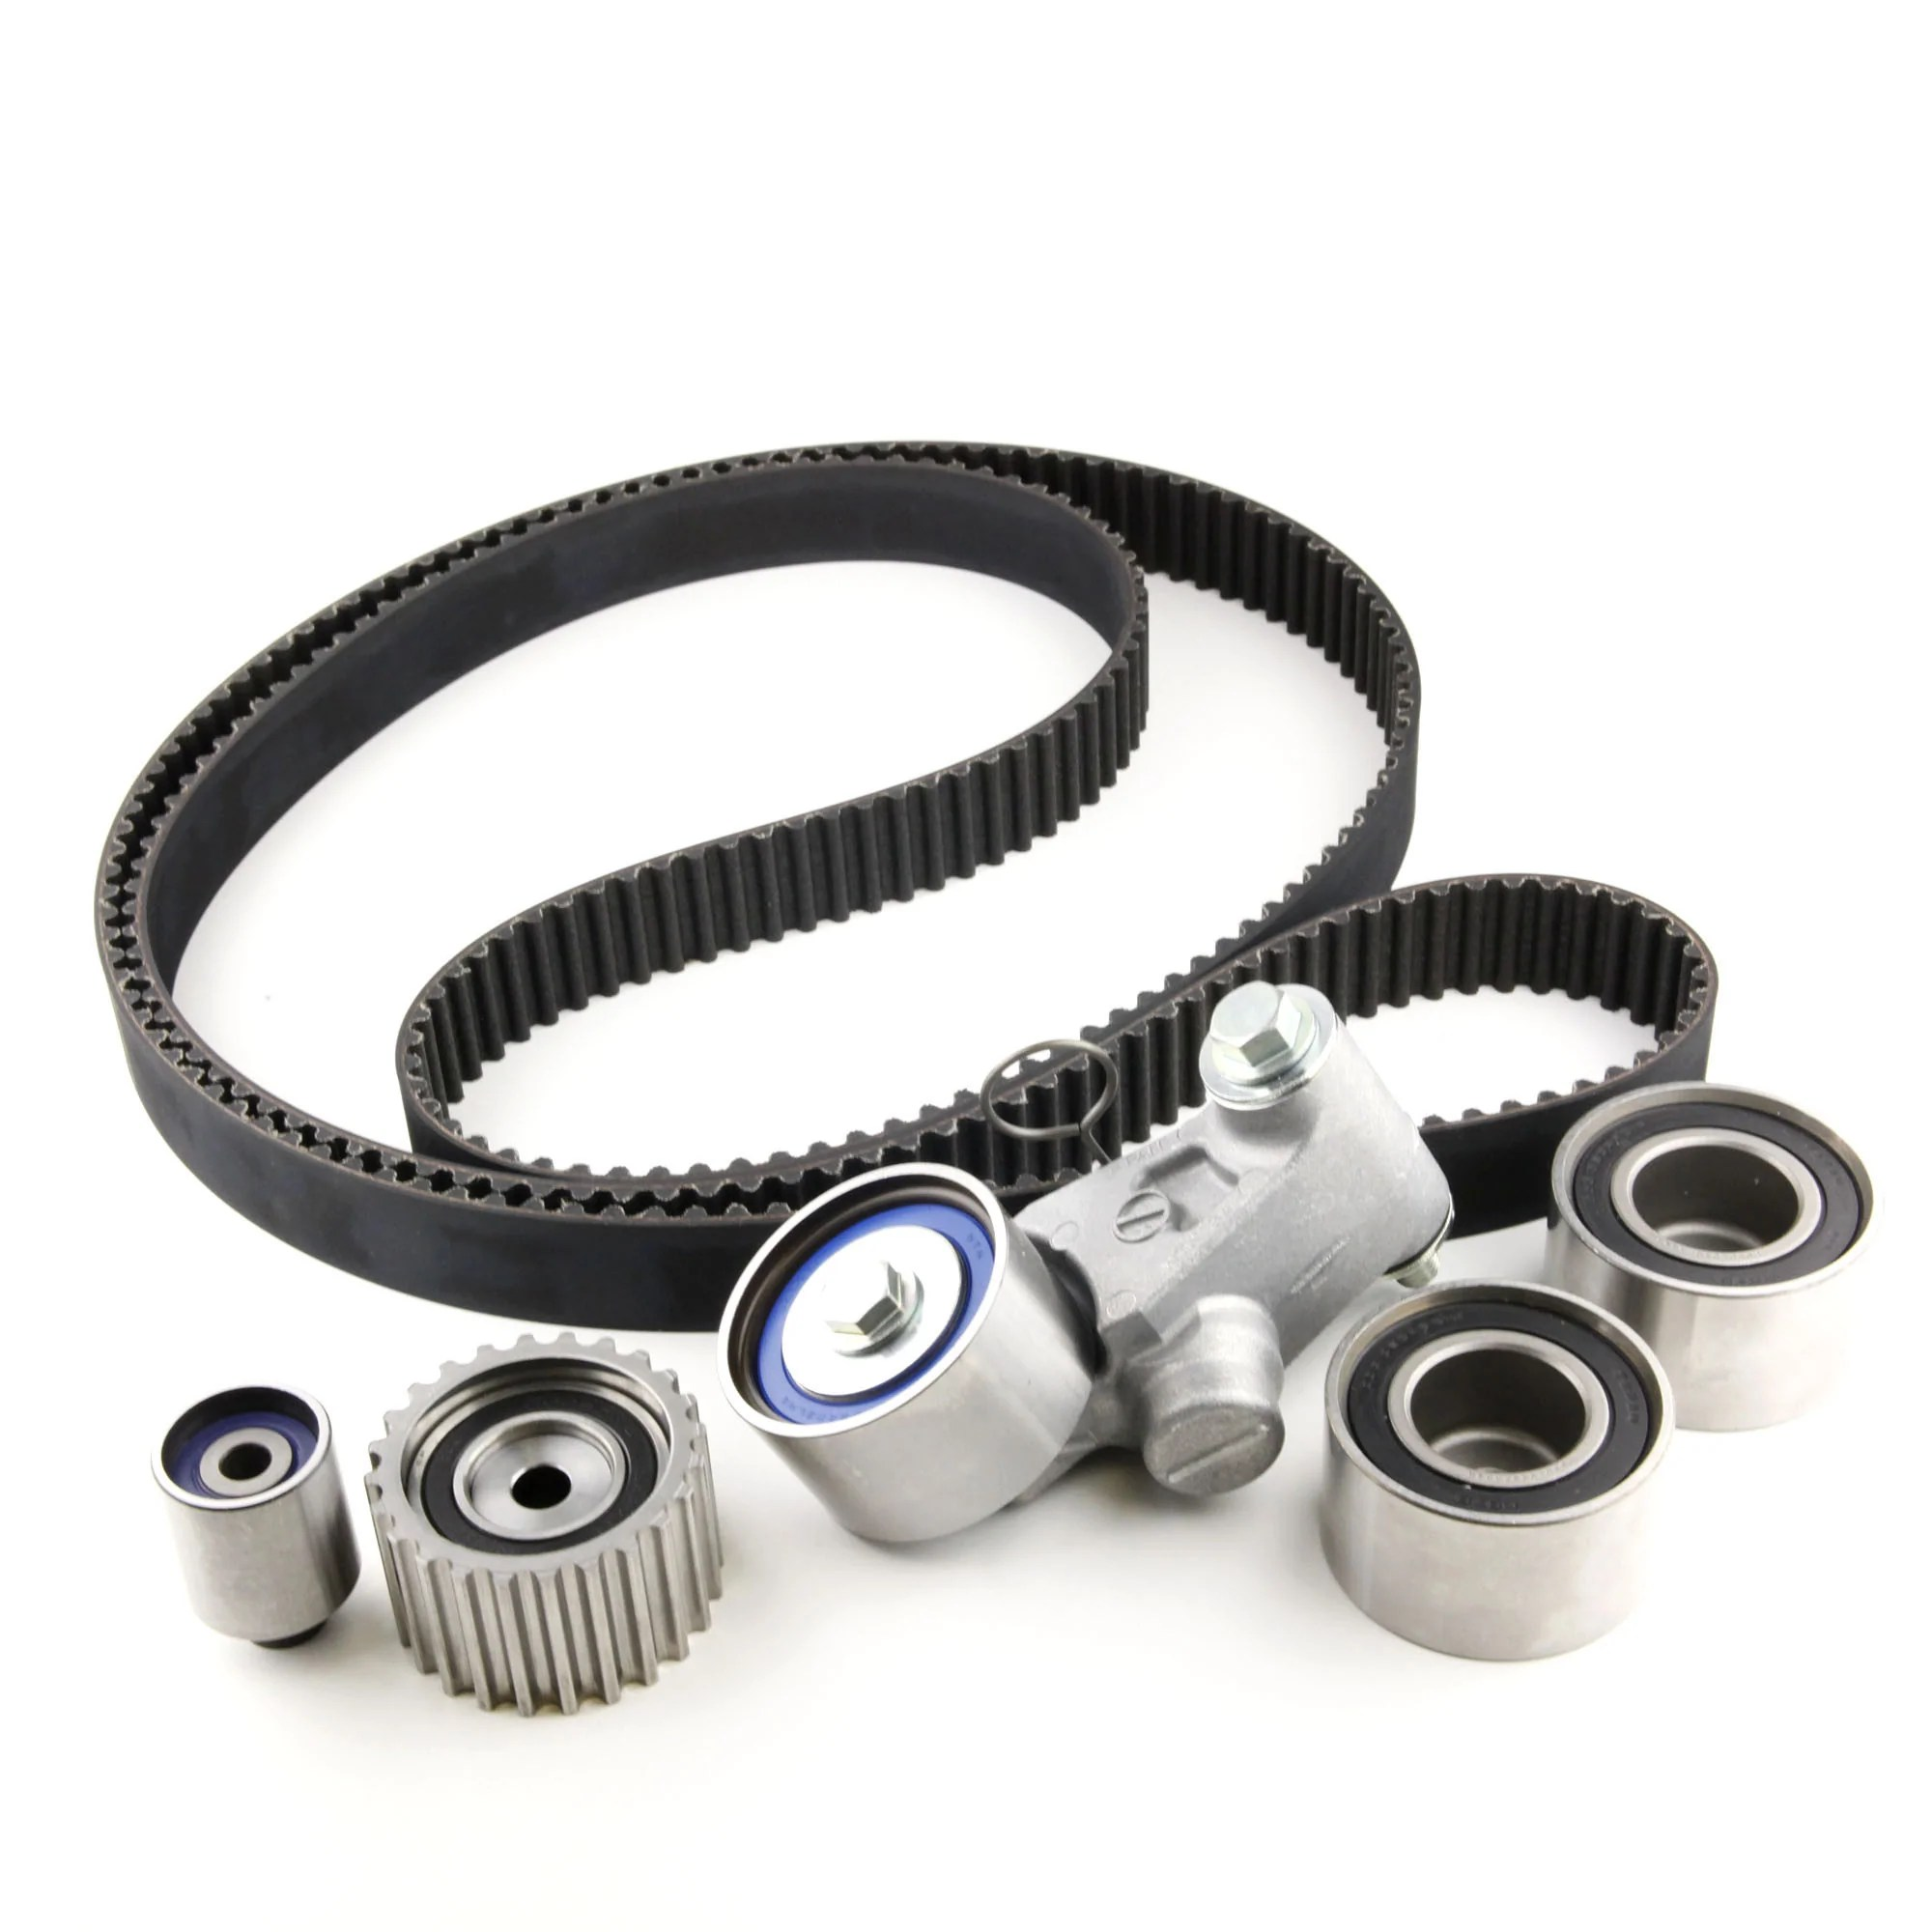 hight resolution of gates timing belt kit without water pump 2002 2014 wrx sti 2003 2013 forester 2005 2009 legacy gt outback xt